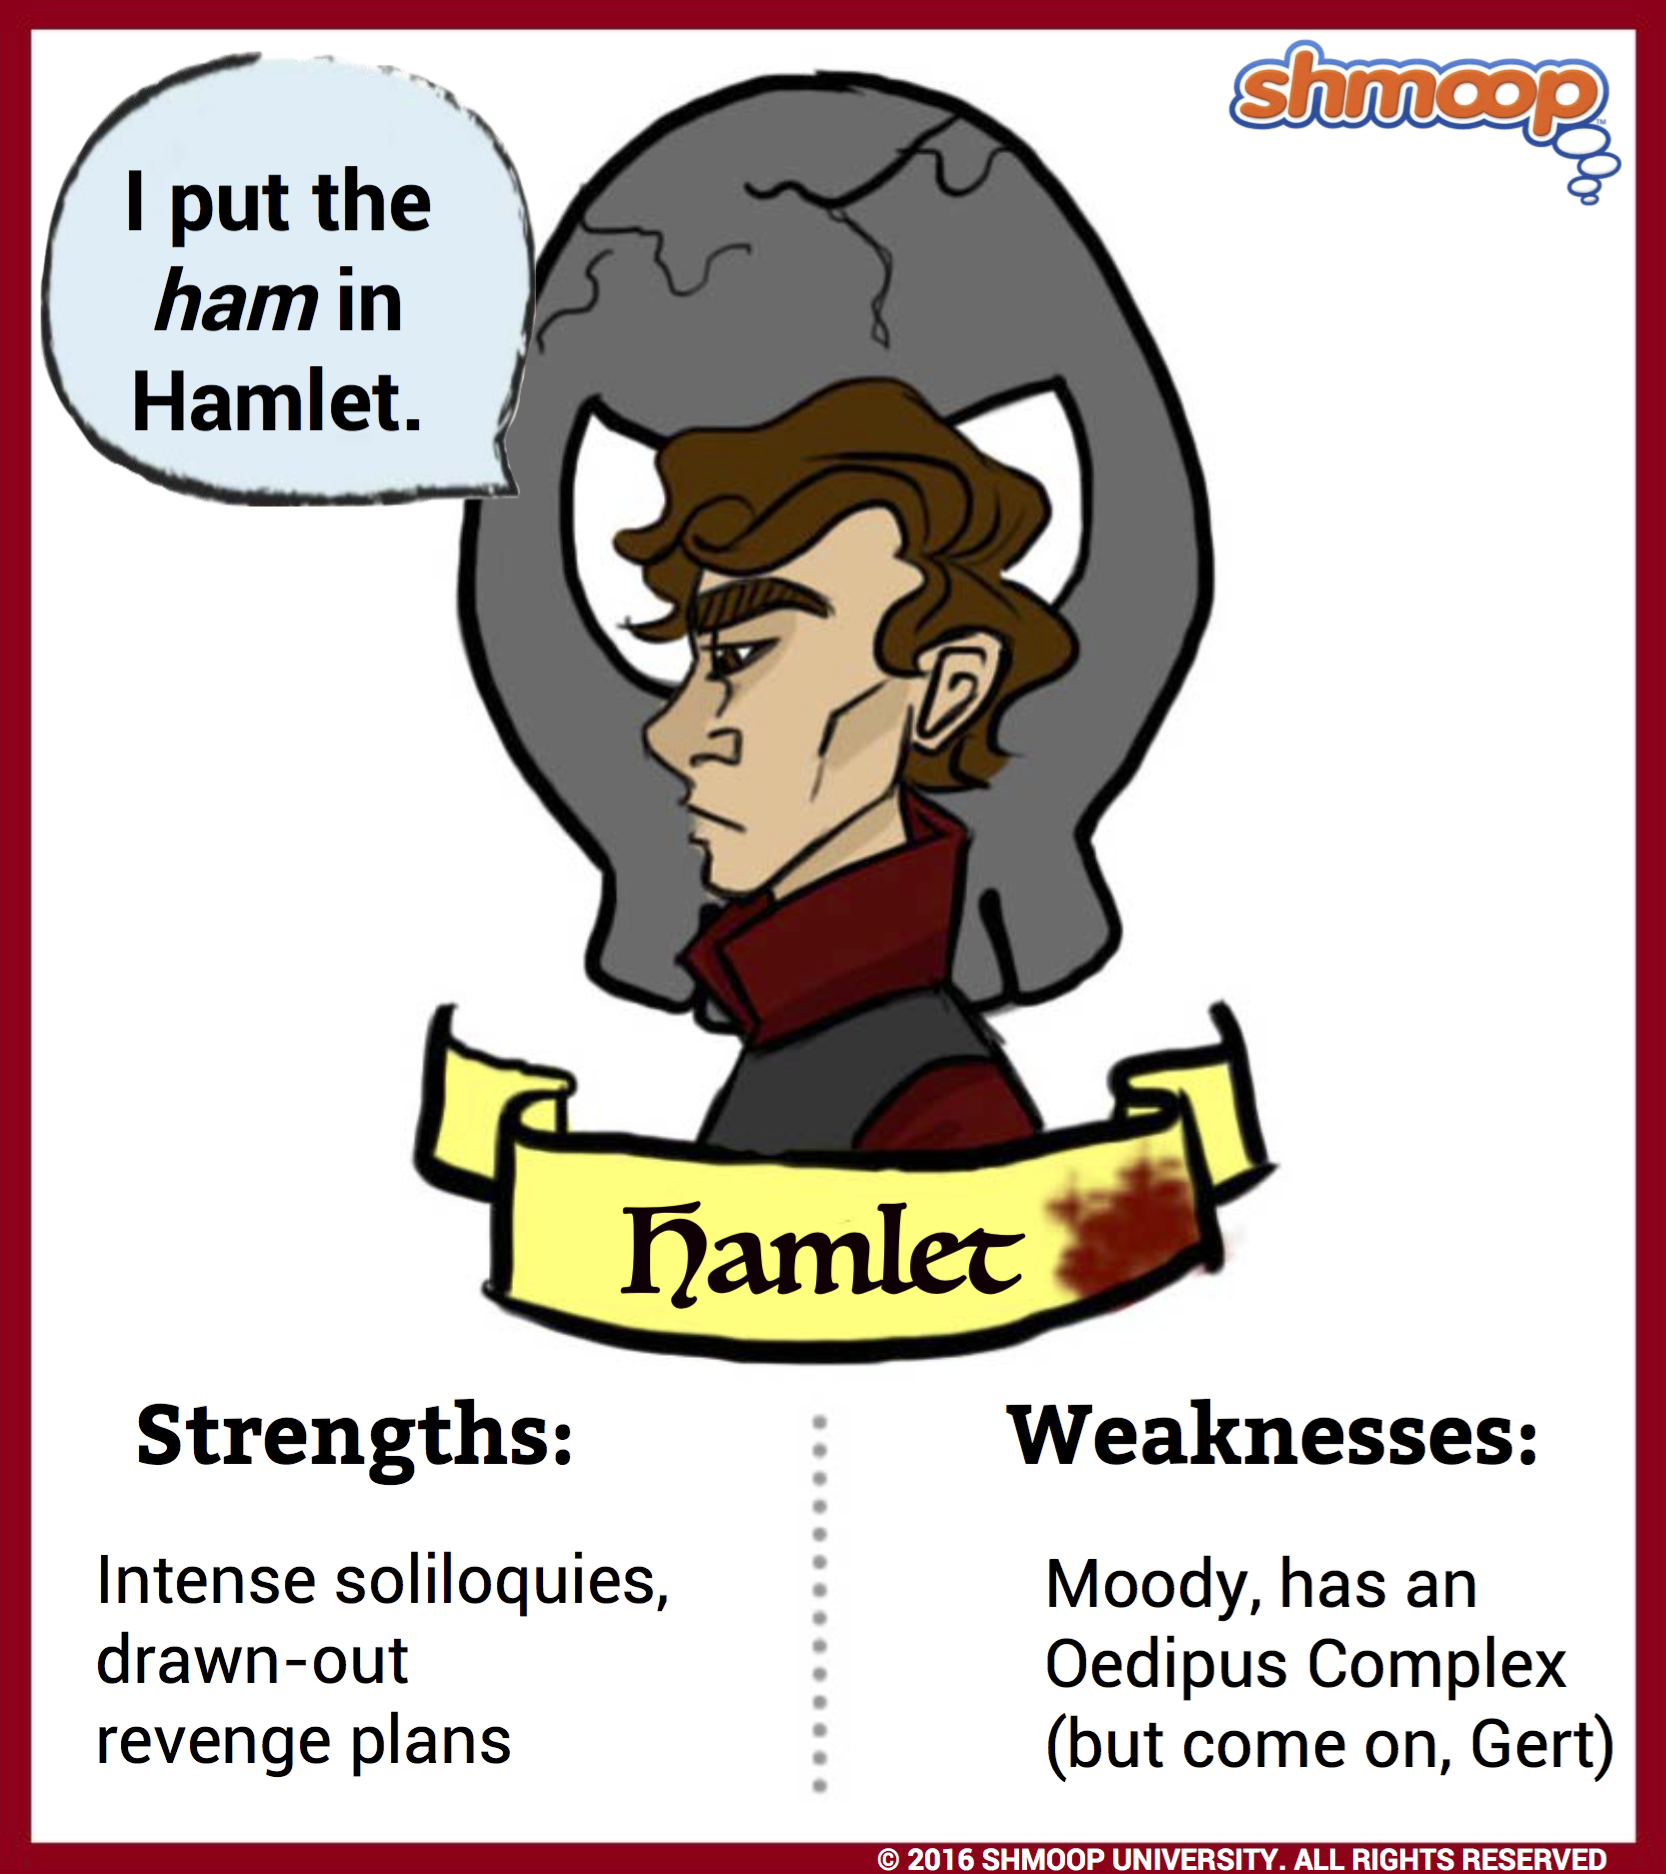 character sketch of hamlet essay Shakespeare's hamlet is easily mastered using our shakespeare's hamlet essay, summary, quotes and character analysis.